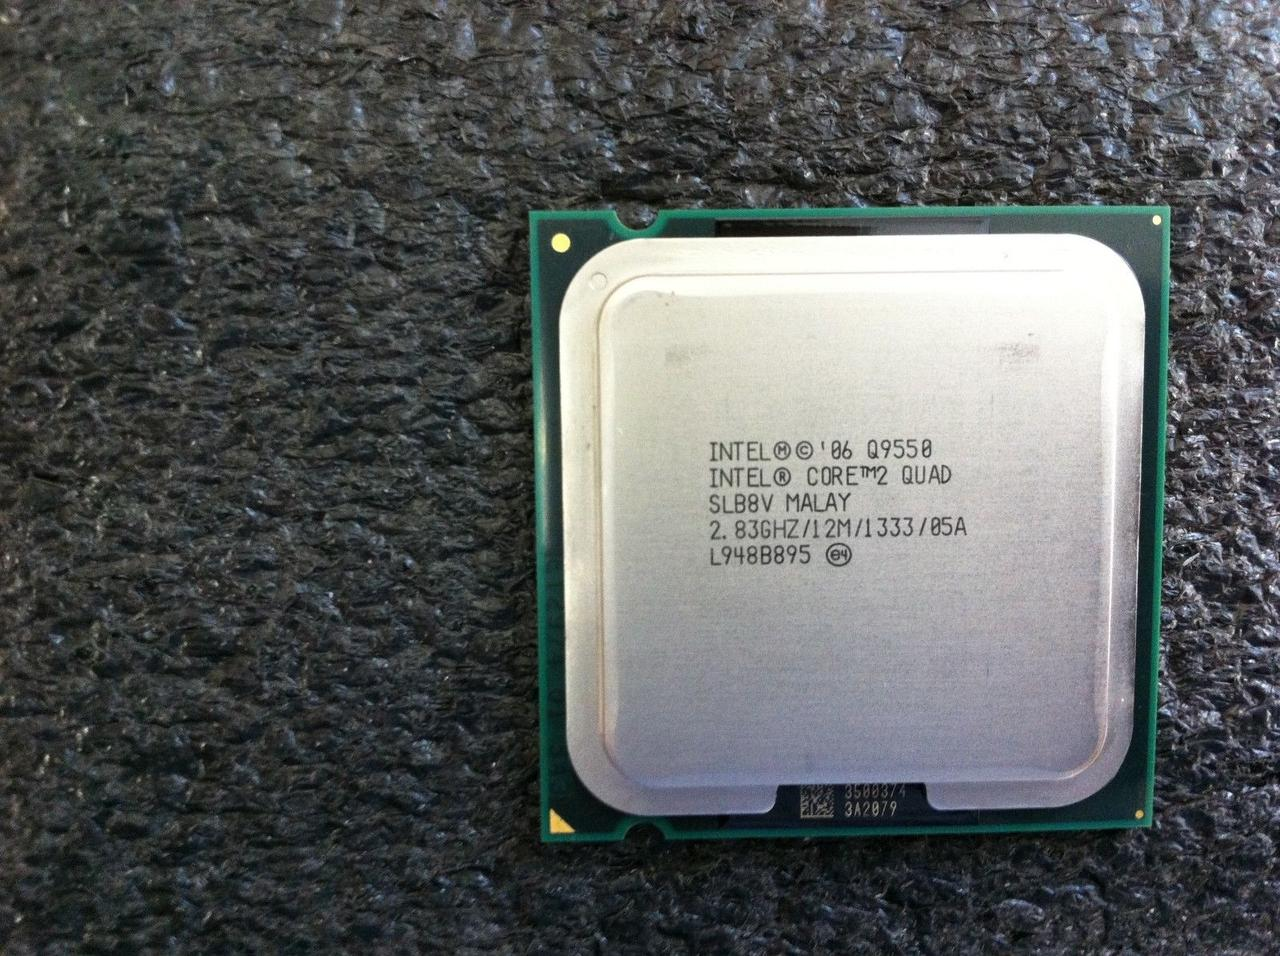 Процессор Intel Core2 Quad Q9550 2.83GHz/12M/1333 (SLB8V) s775, tray